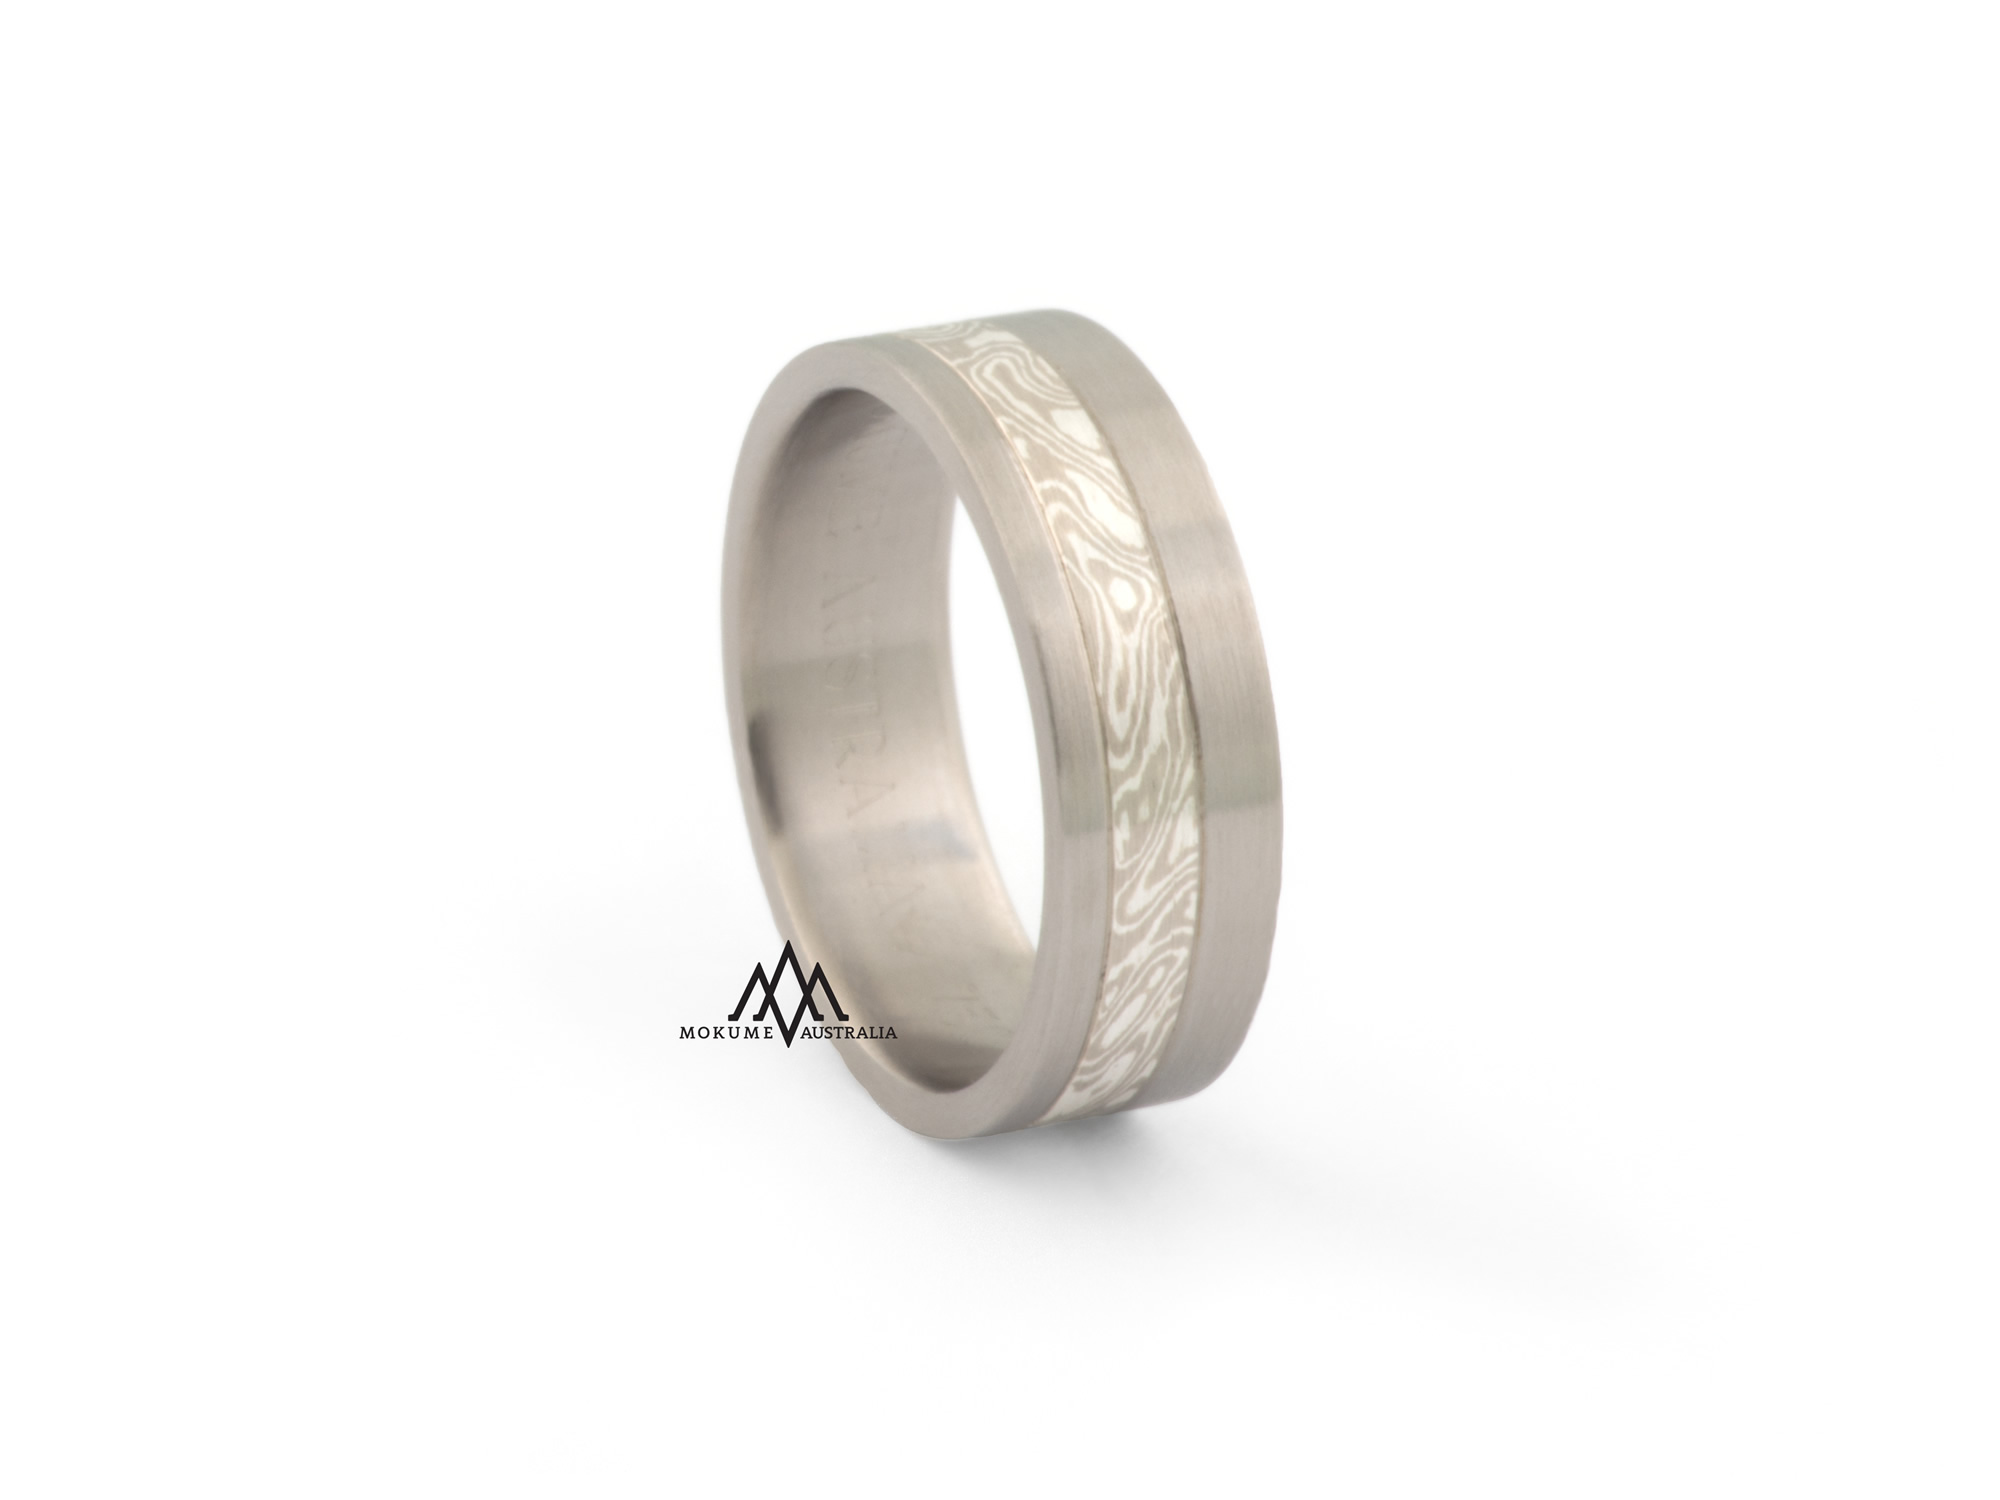 Grey/white off-centre flat mokume-gane ring